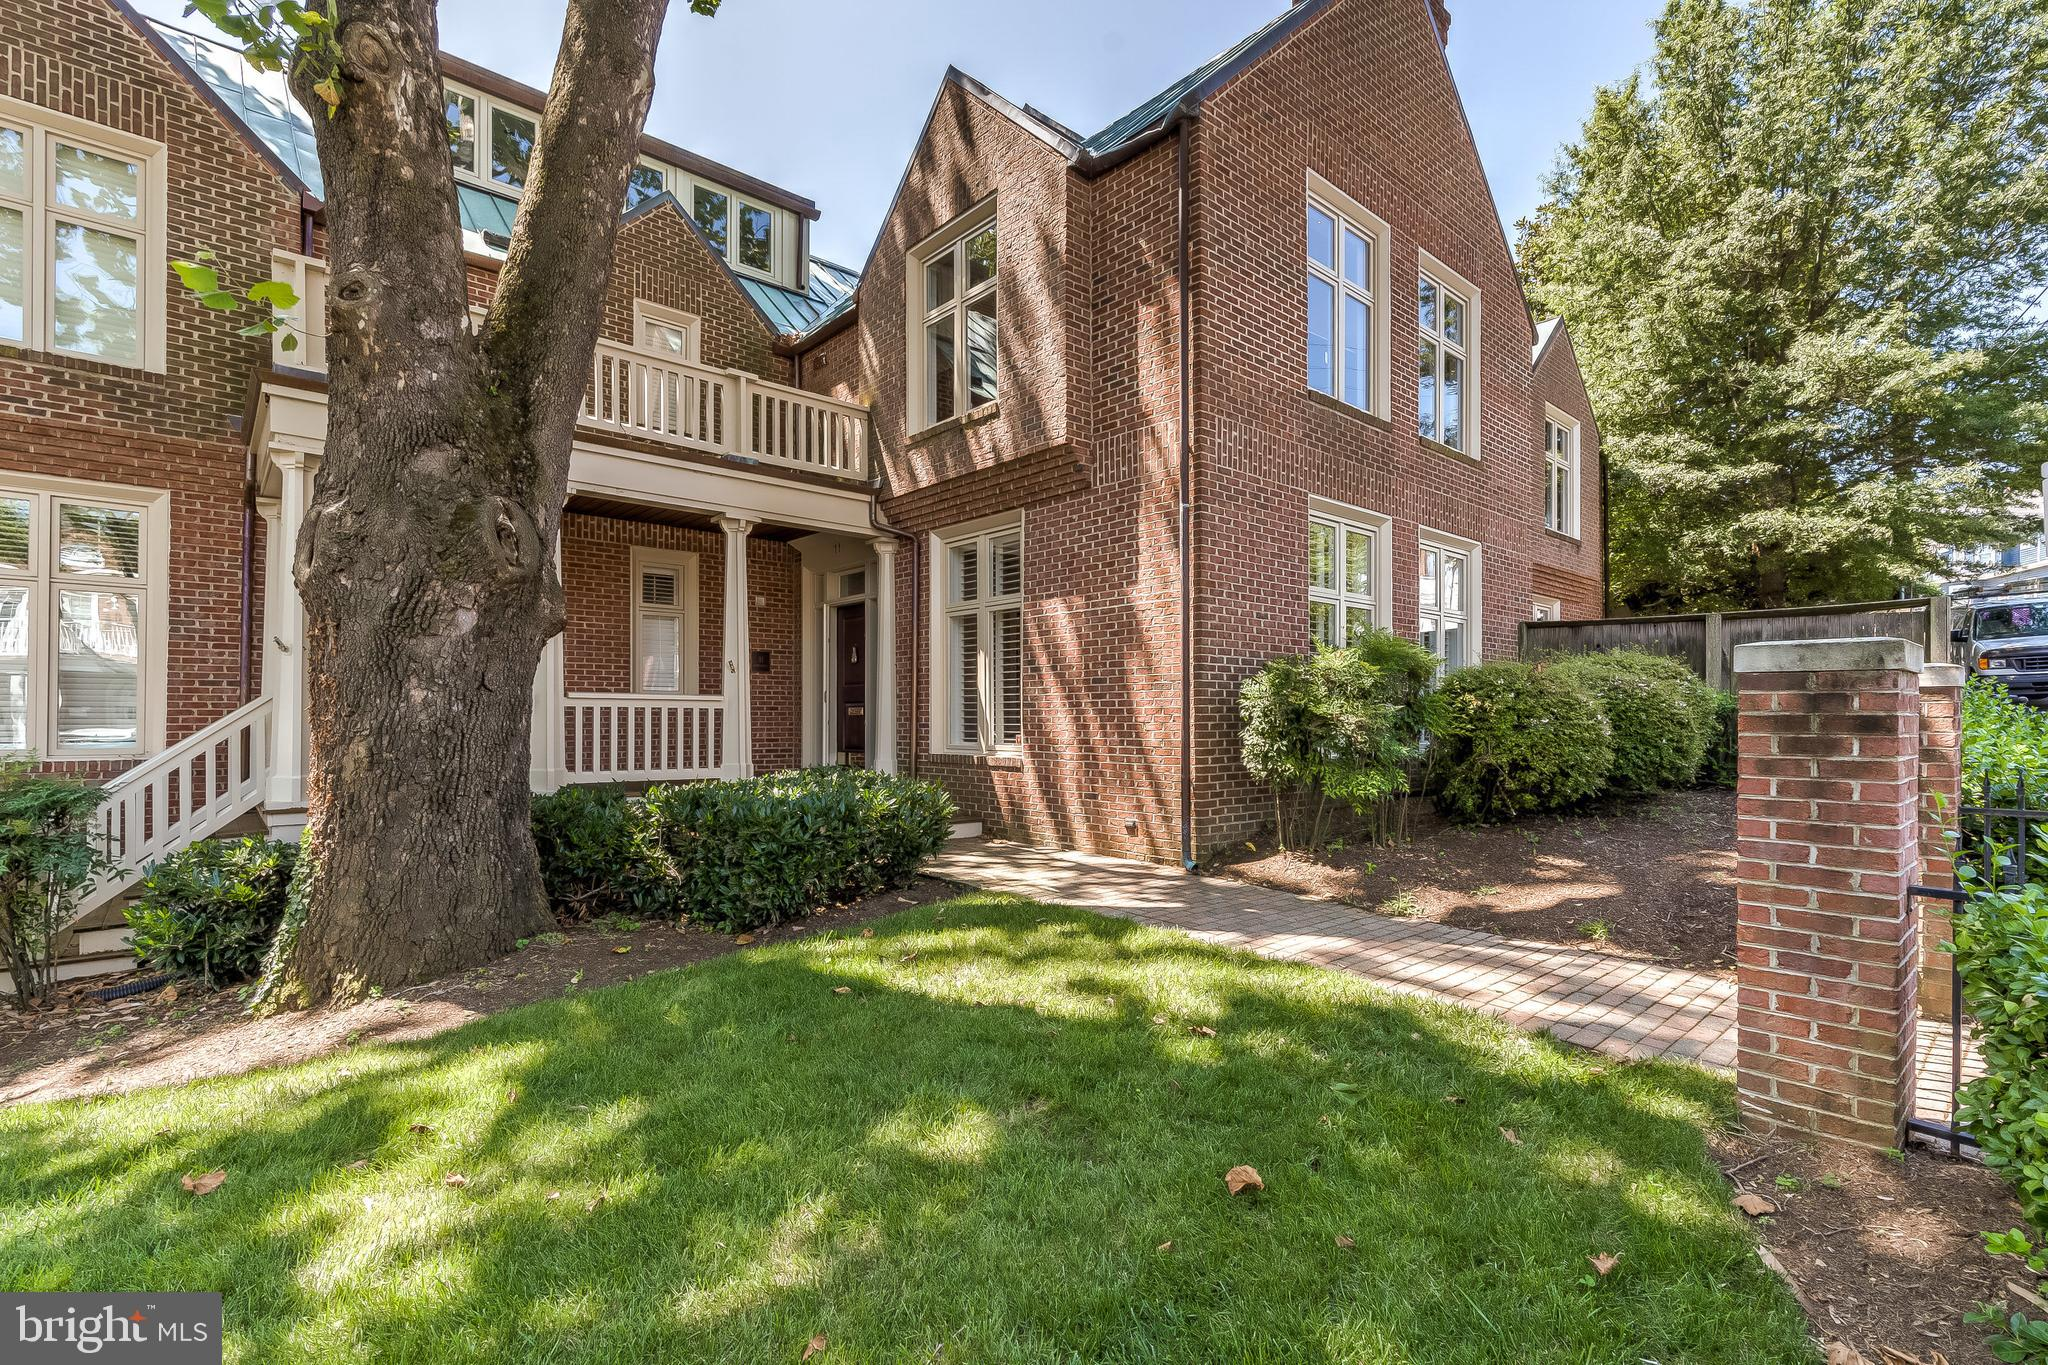 11 COMPROMISE STREET, ANNAPOLIS, MD 21401